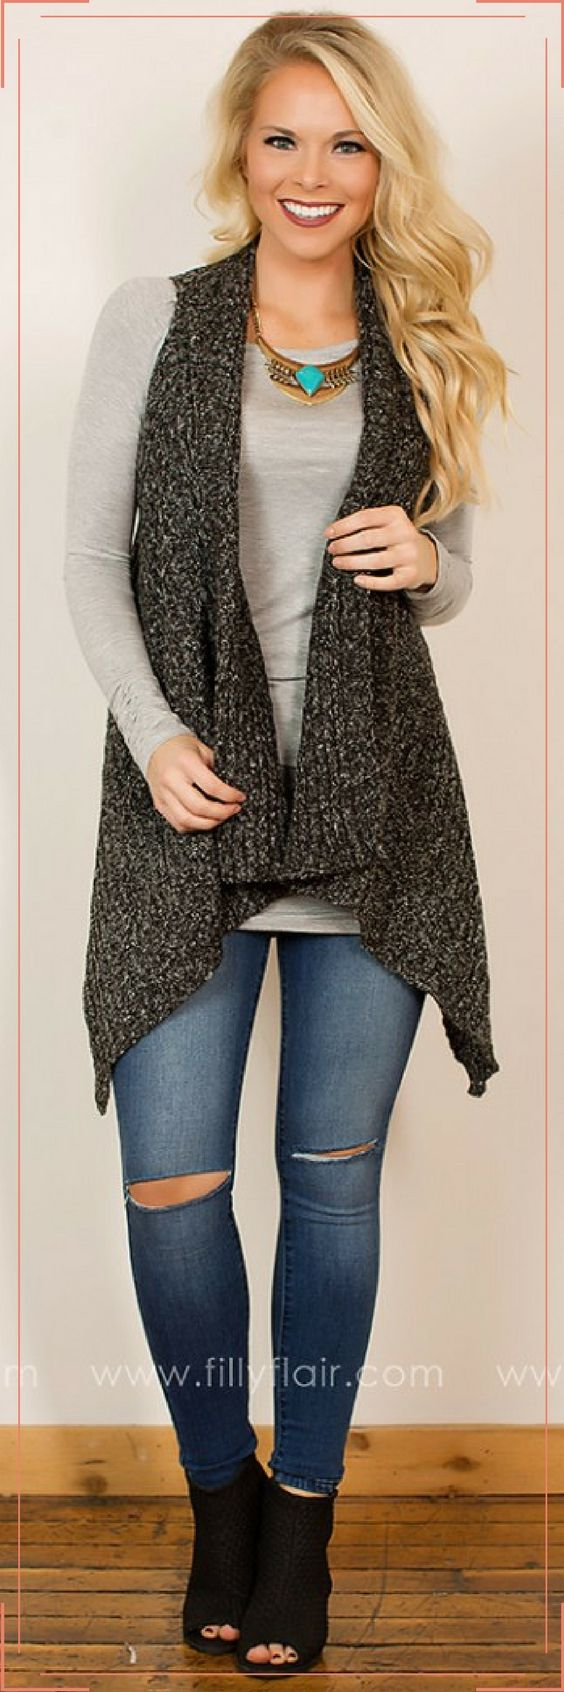 Looking for the perfect versatile cardigan? This heathered gray sleeveless cardigan pairs nicely with a variety of different outfits and makes for a great layering piece!